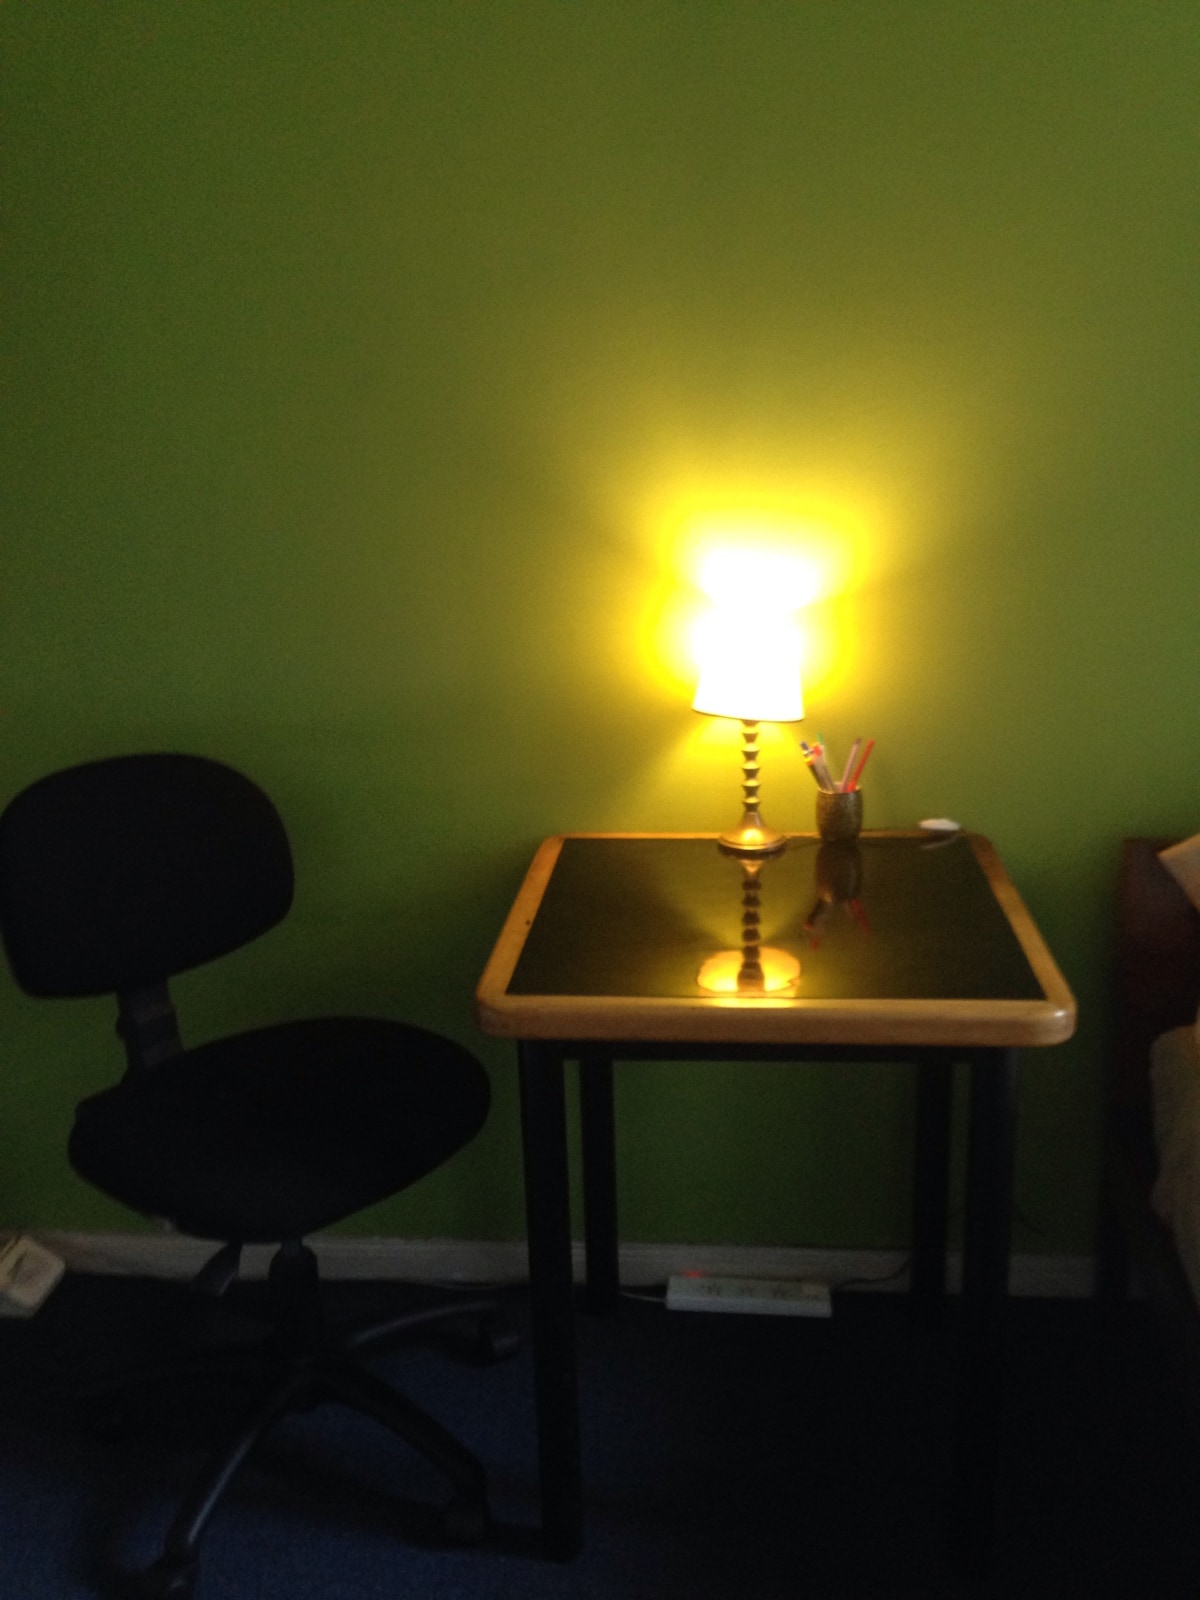 It has a table to use like a desk . I keep the office chair because people stay on the computer for long periods and is better for your body, specially if you study or work online:)